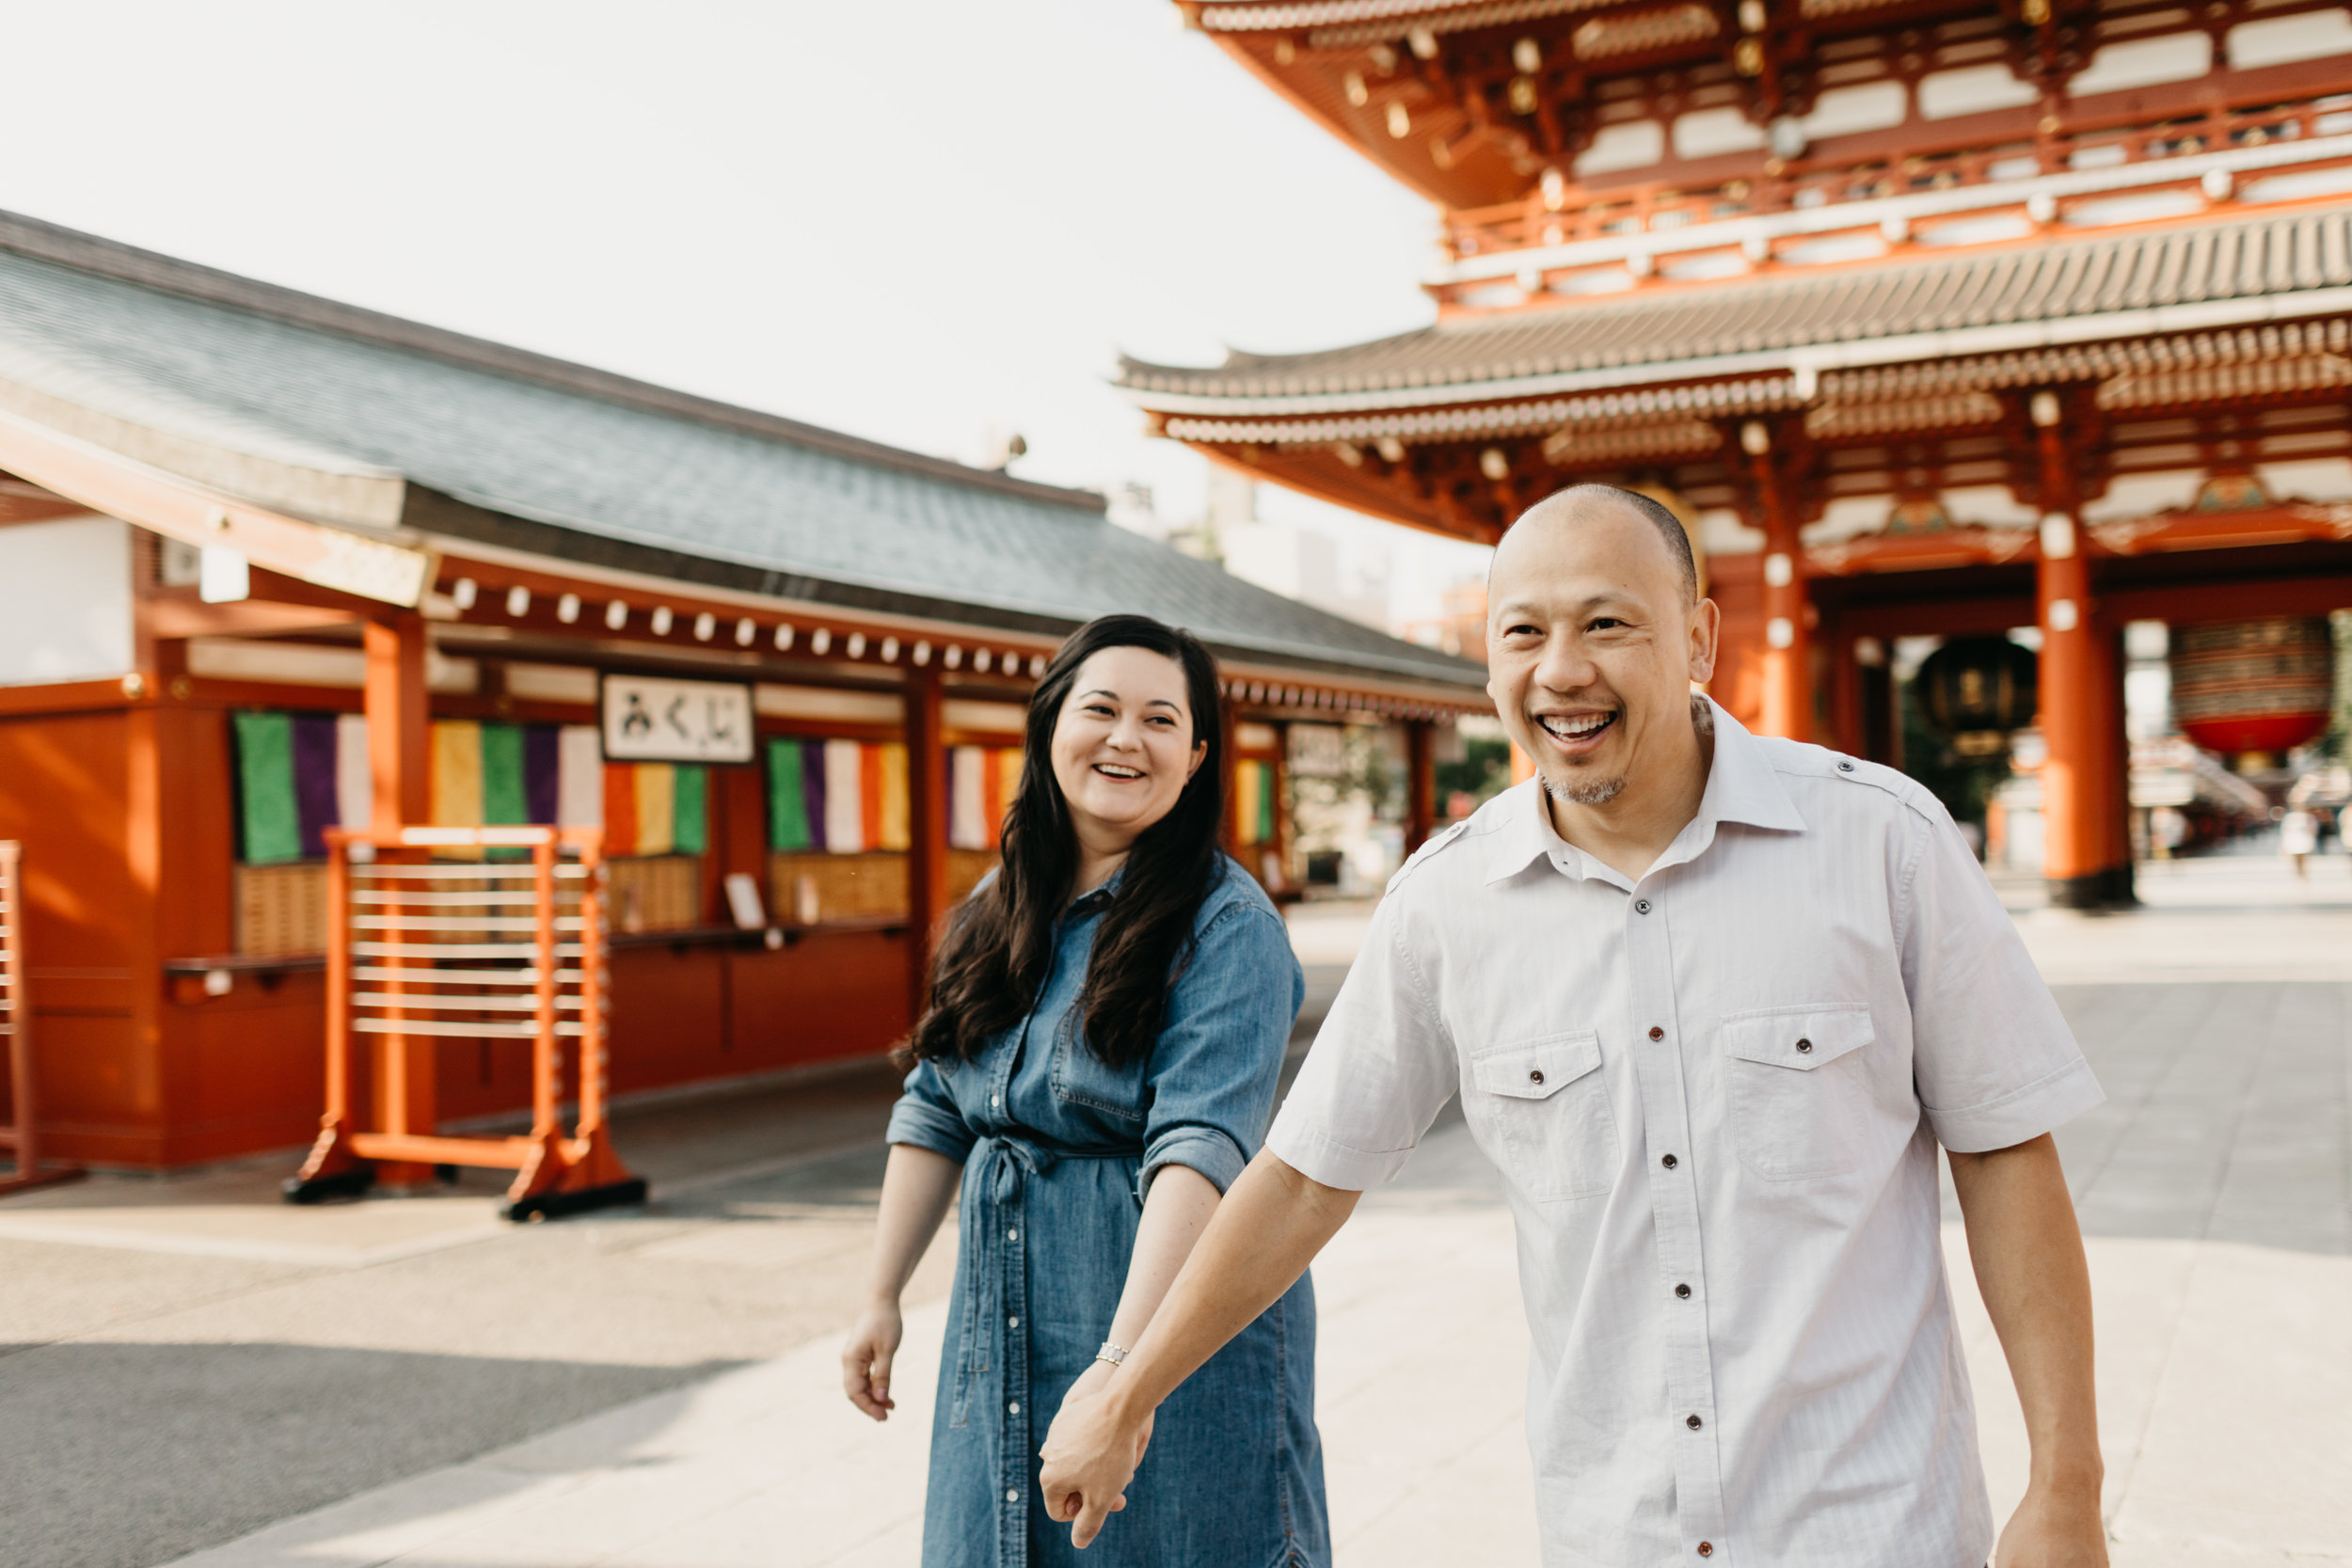 tokyo_sensoji_engagement_session_pictures_by_samantha_look-15.jpg